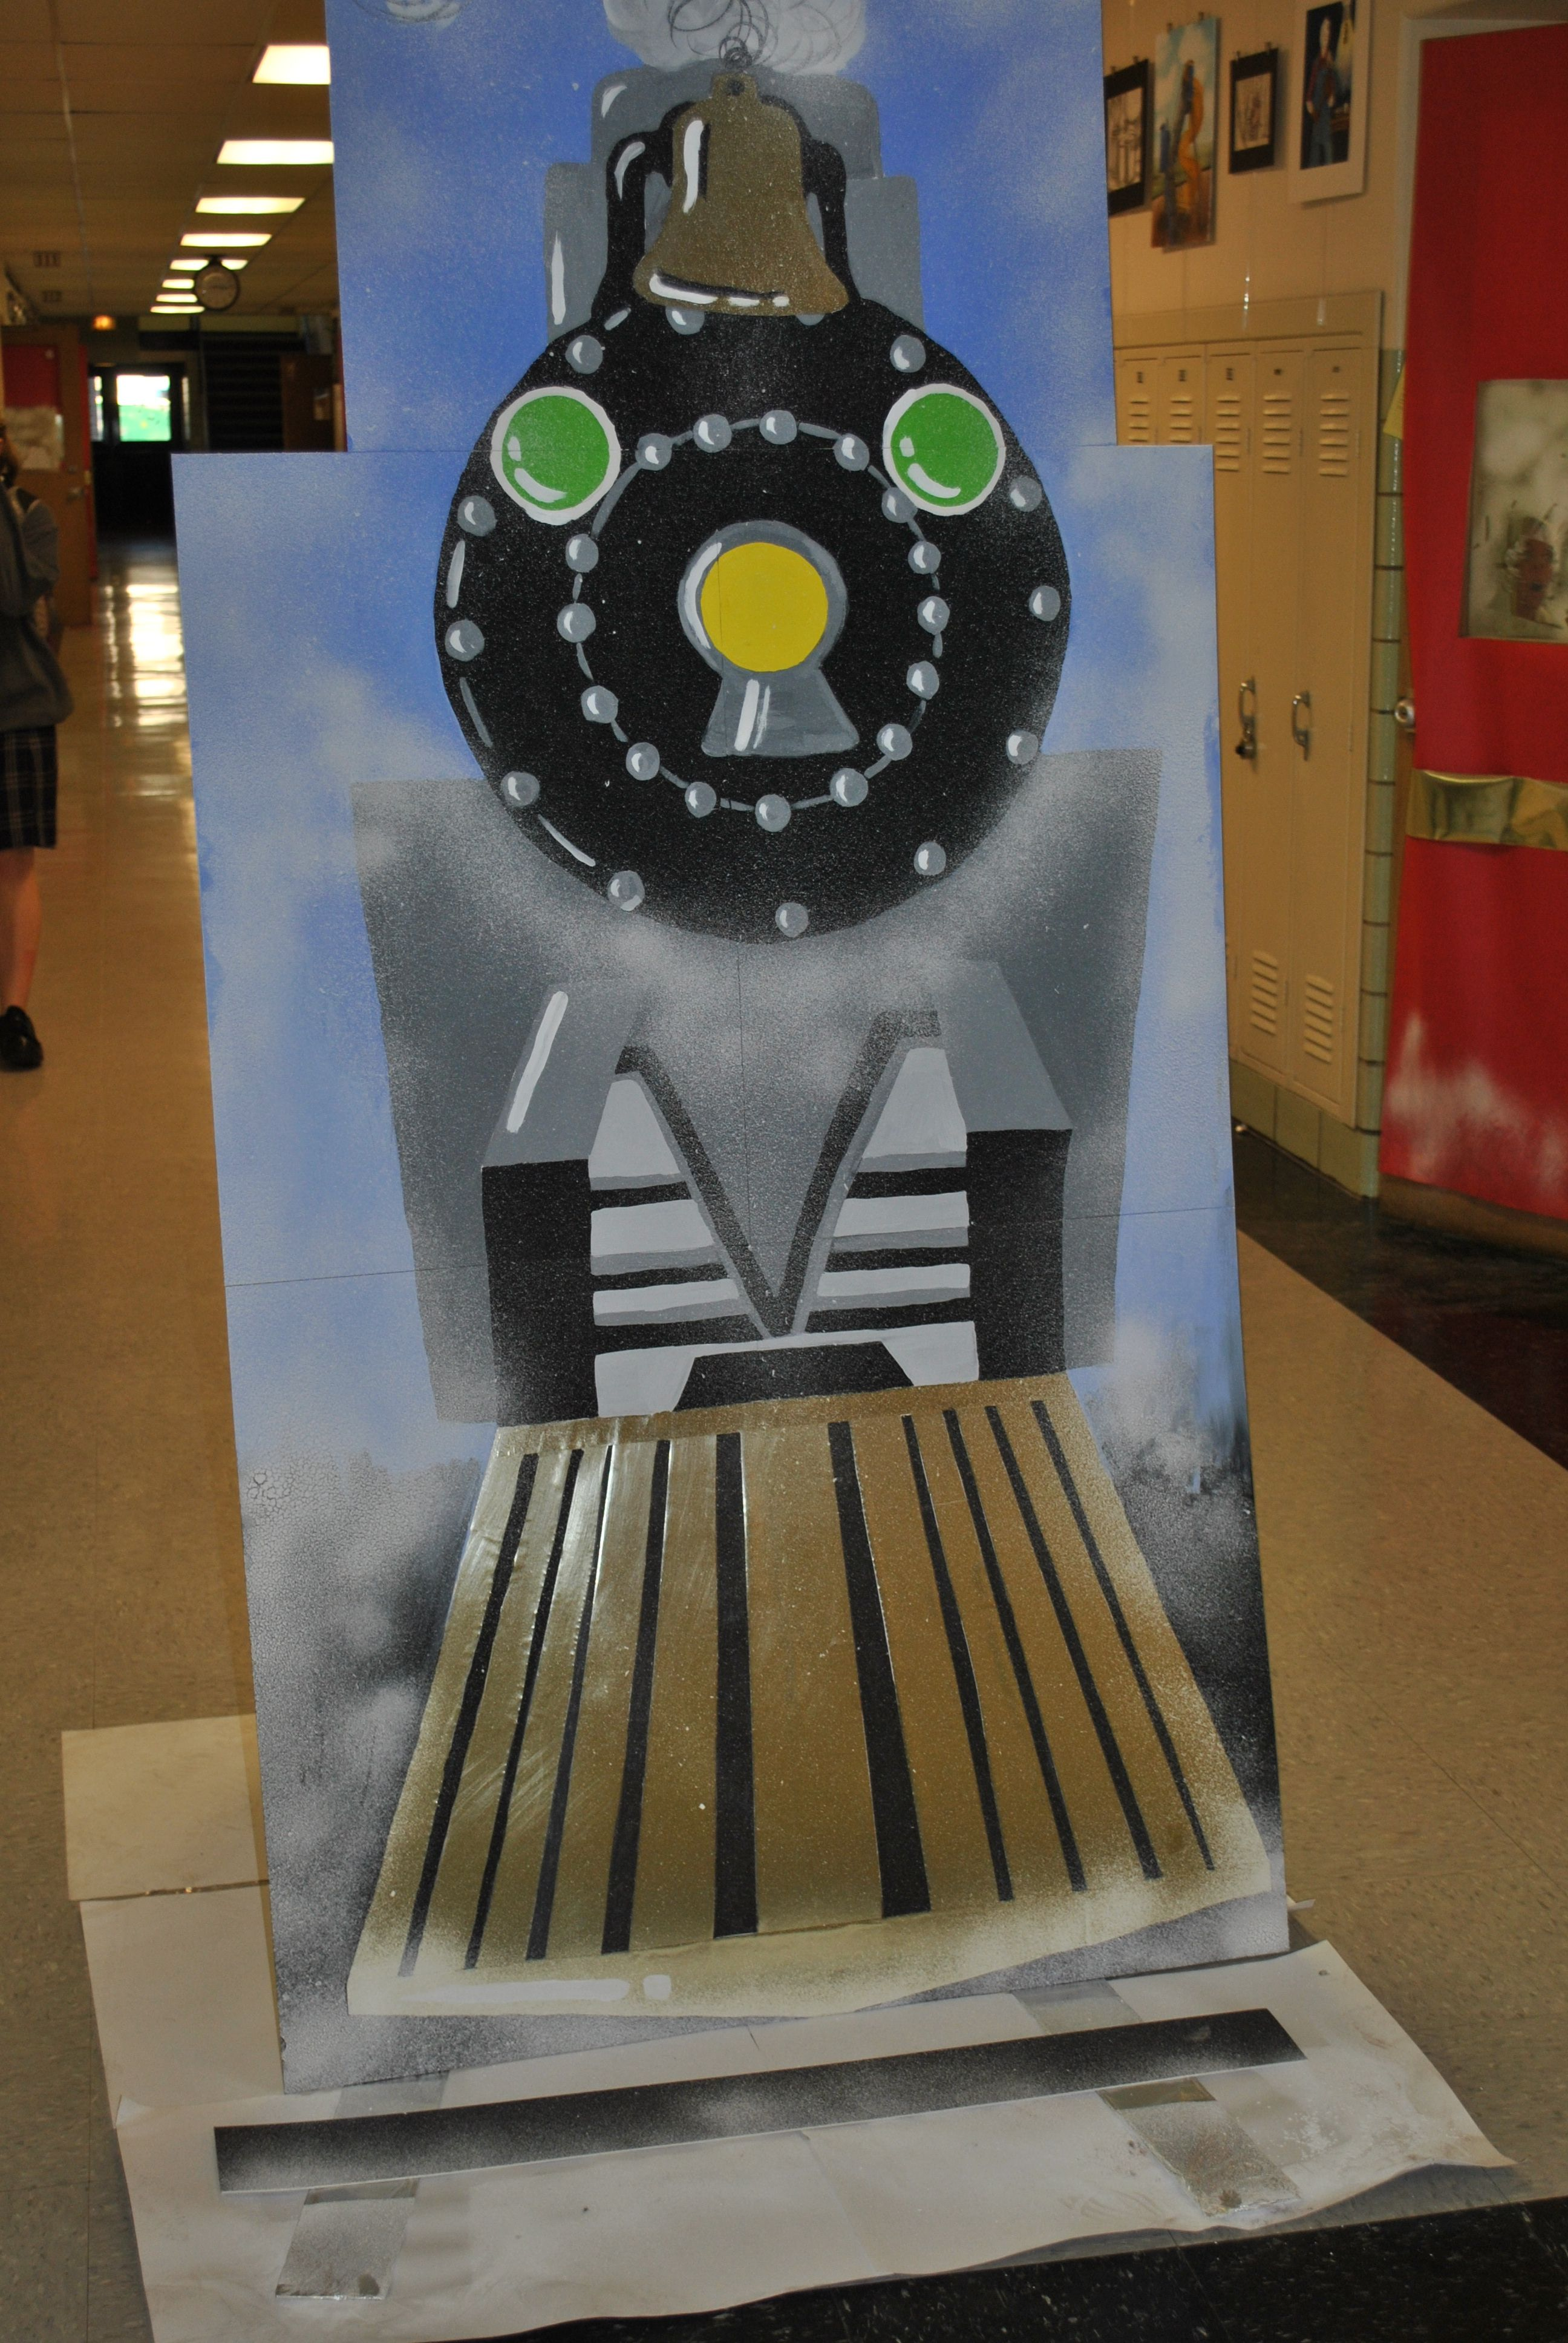 The faculty and staff were invited to decorate their doors